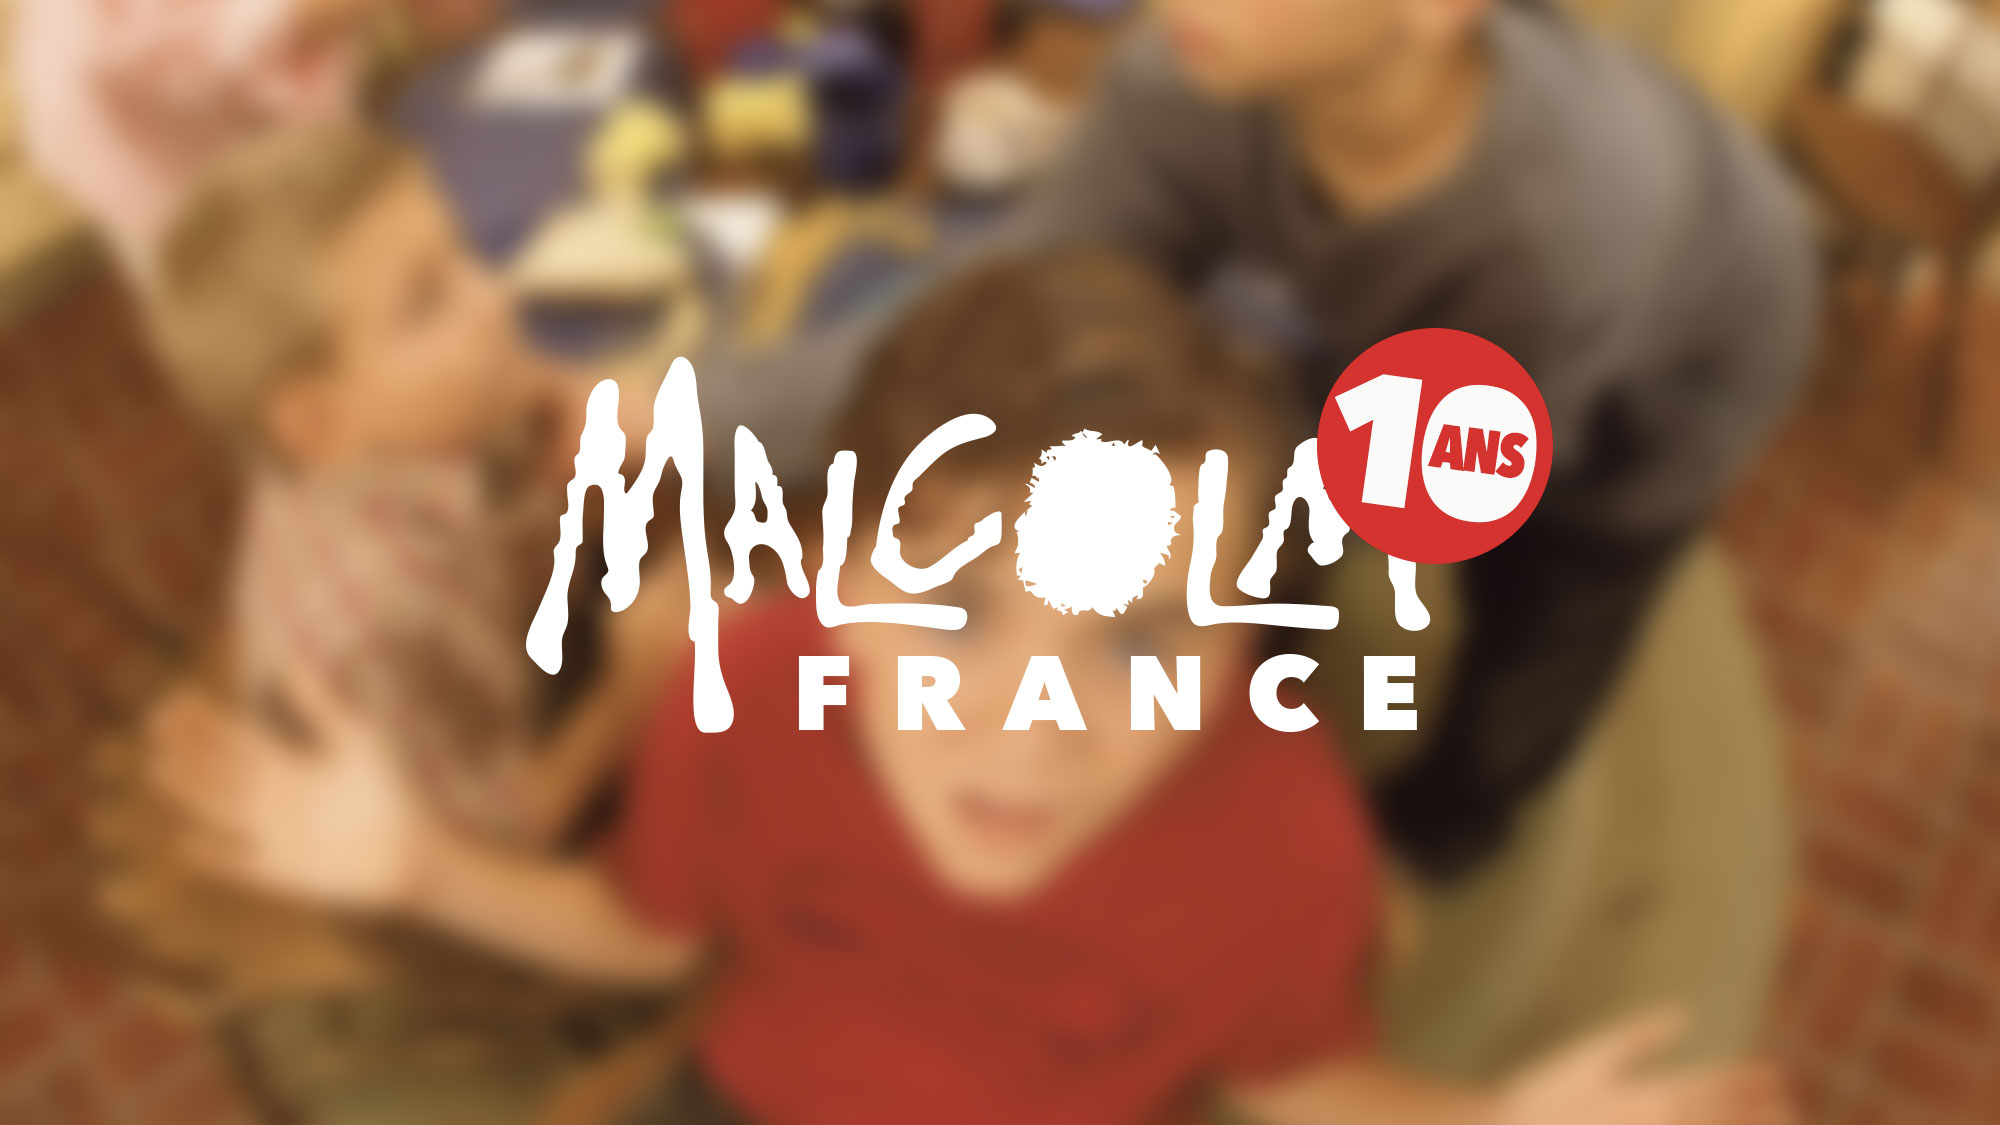 Malcolm France a 10 ans.